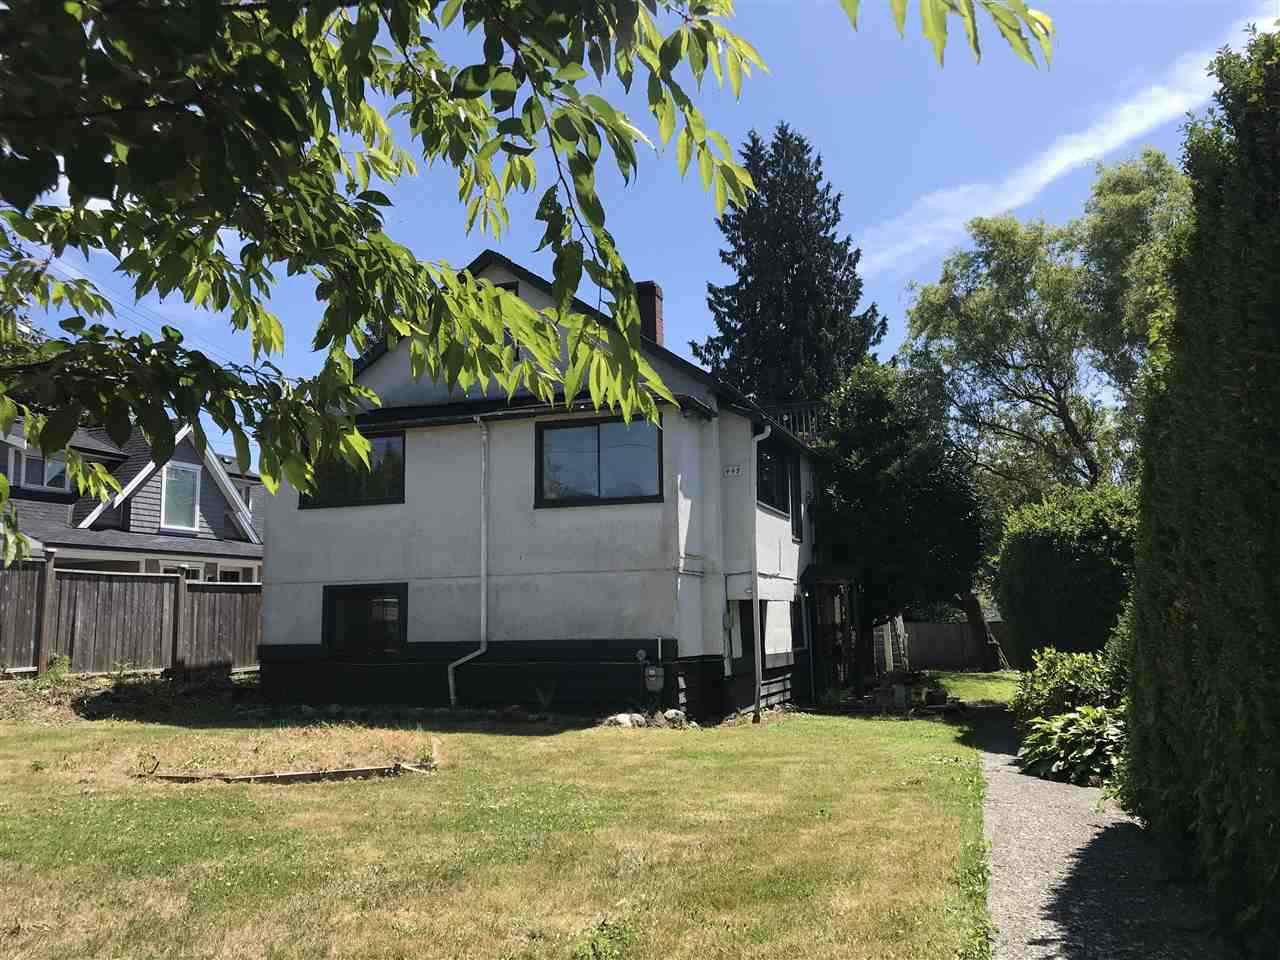 Main Photo: 449 E 15TH Street in North Vancouver: Central Lonsdale House for sale : MLS®# R2424448